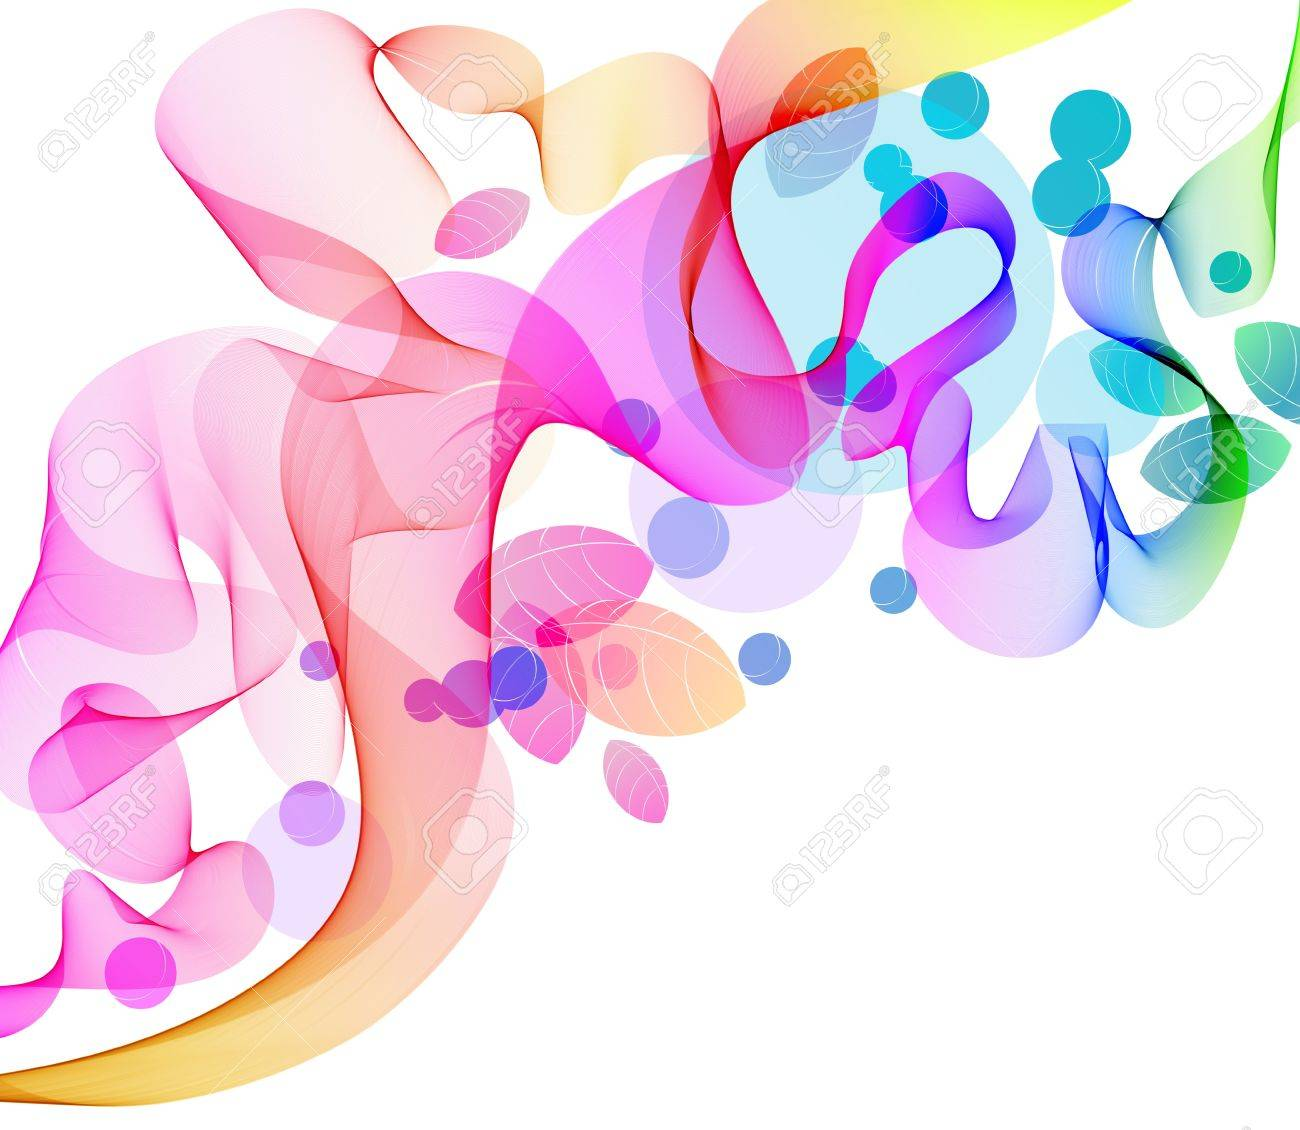 Abstract color background with wave and leaves, illustration Stock Vector - 12024199